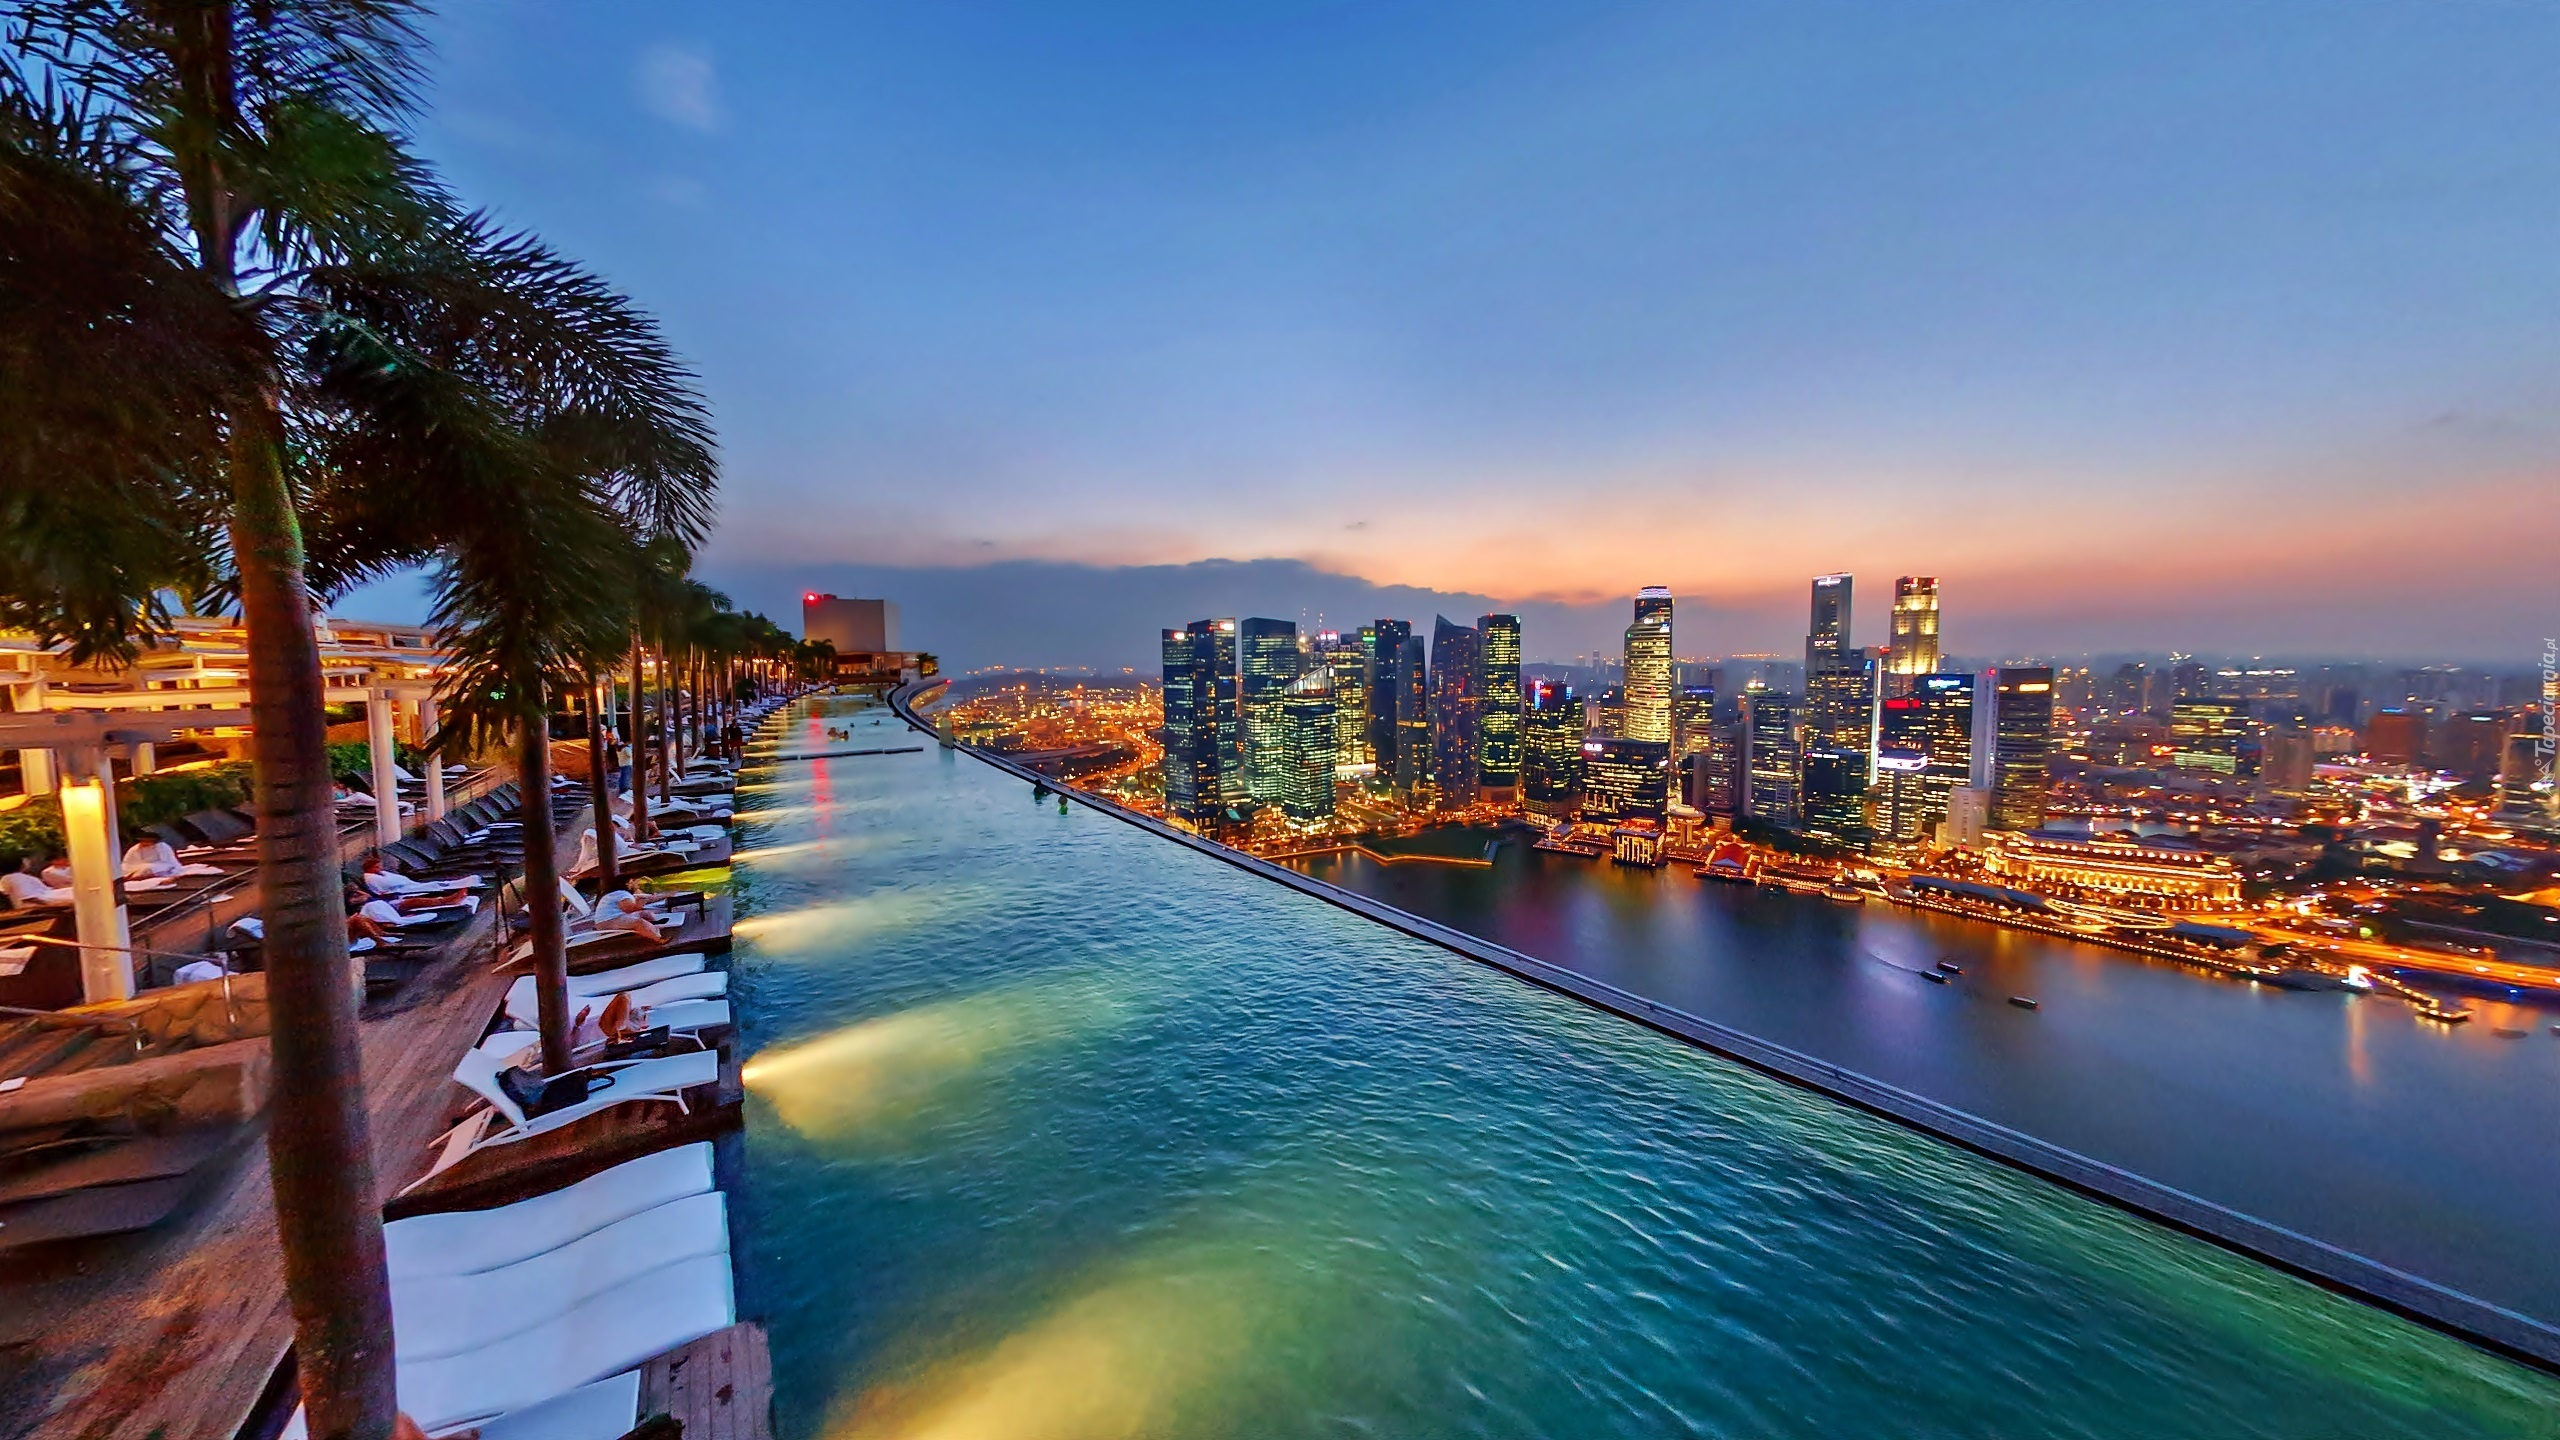 Infinity pool singapore wallpaper Phone Singapore Basen Na Dachu Marina Bay Stands Hotel Panorama Air Freshener Marina Bay Sands Panorama Wallpaper Hd Wallpapers Share Coloring